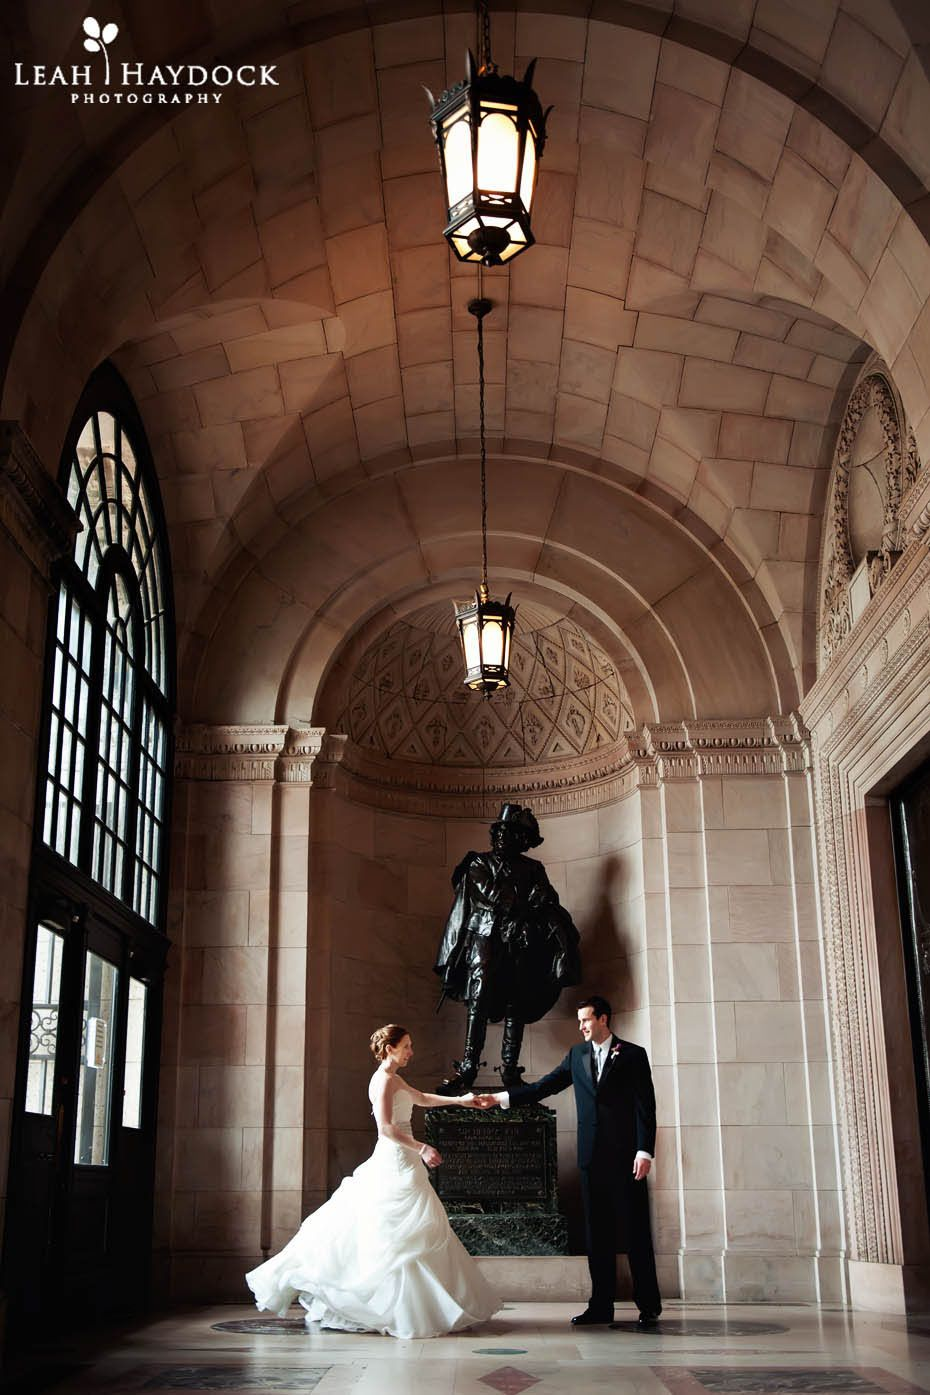 Pin By Leah Haydock On Favorite Wedding Venues In Boston Maine And New Hampshire Wedding Boston Boston Public Library Wedding Boston Engagement Photos